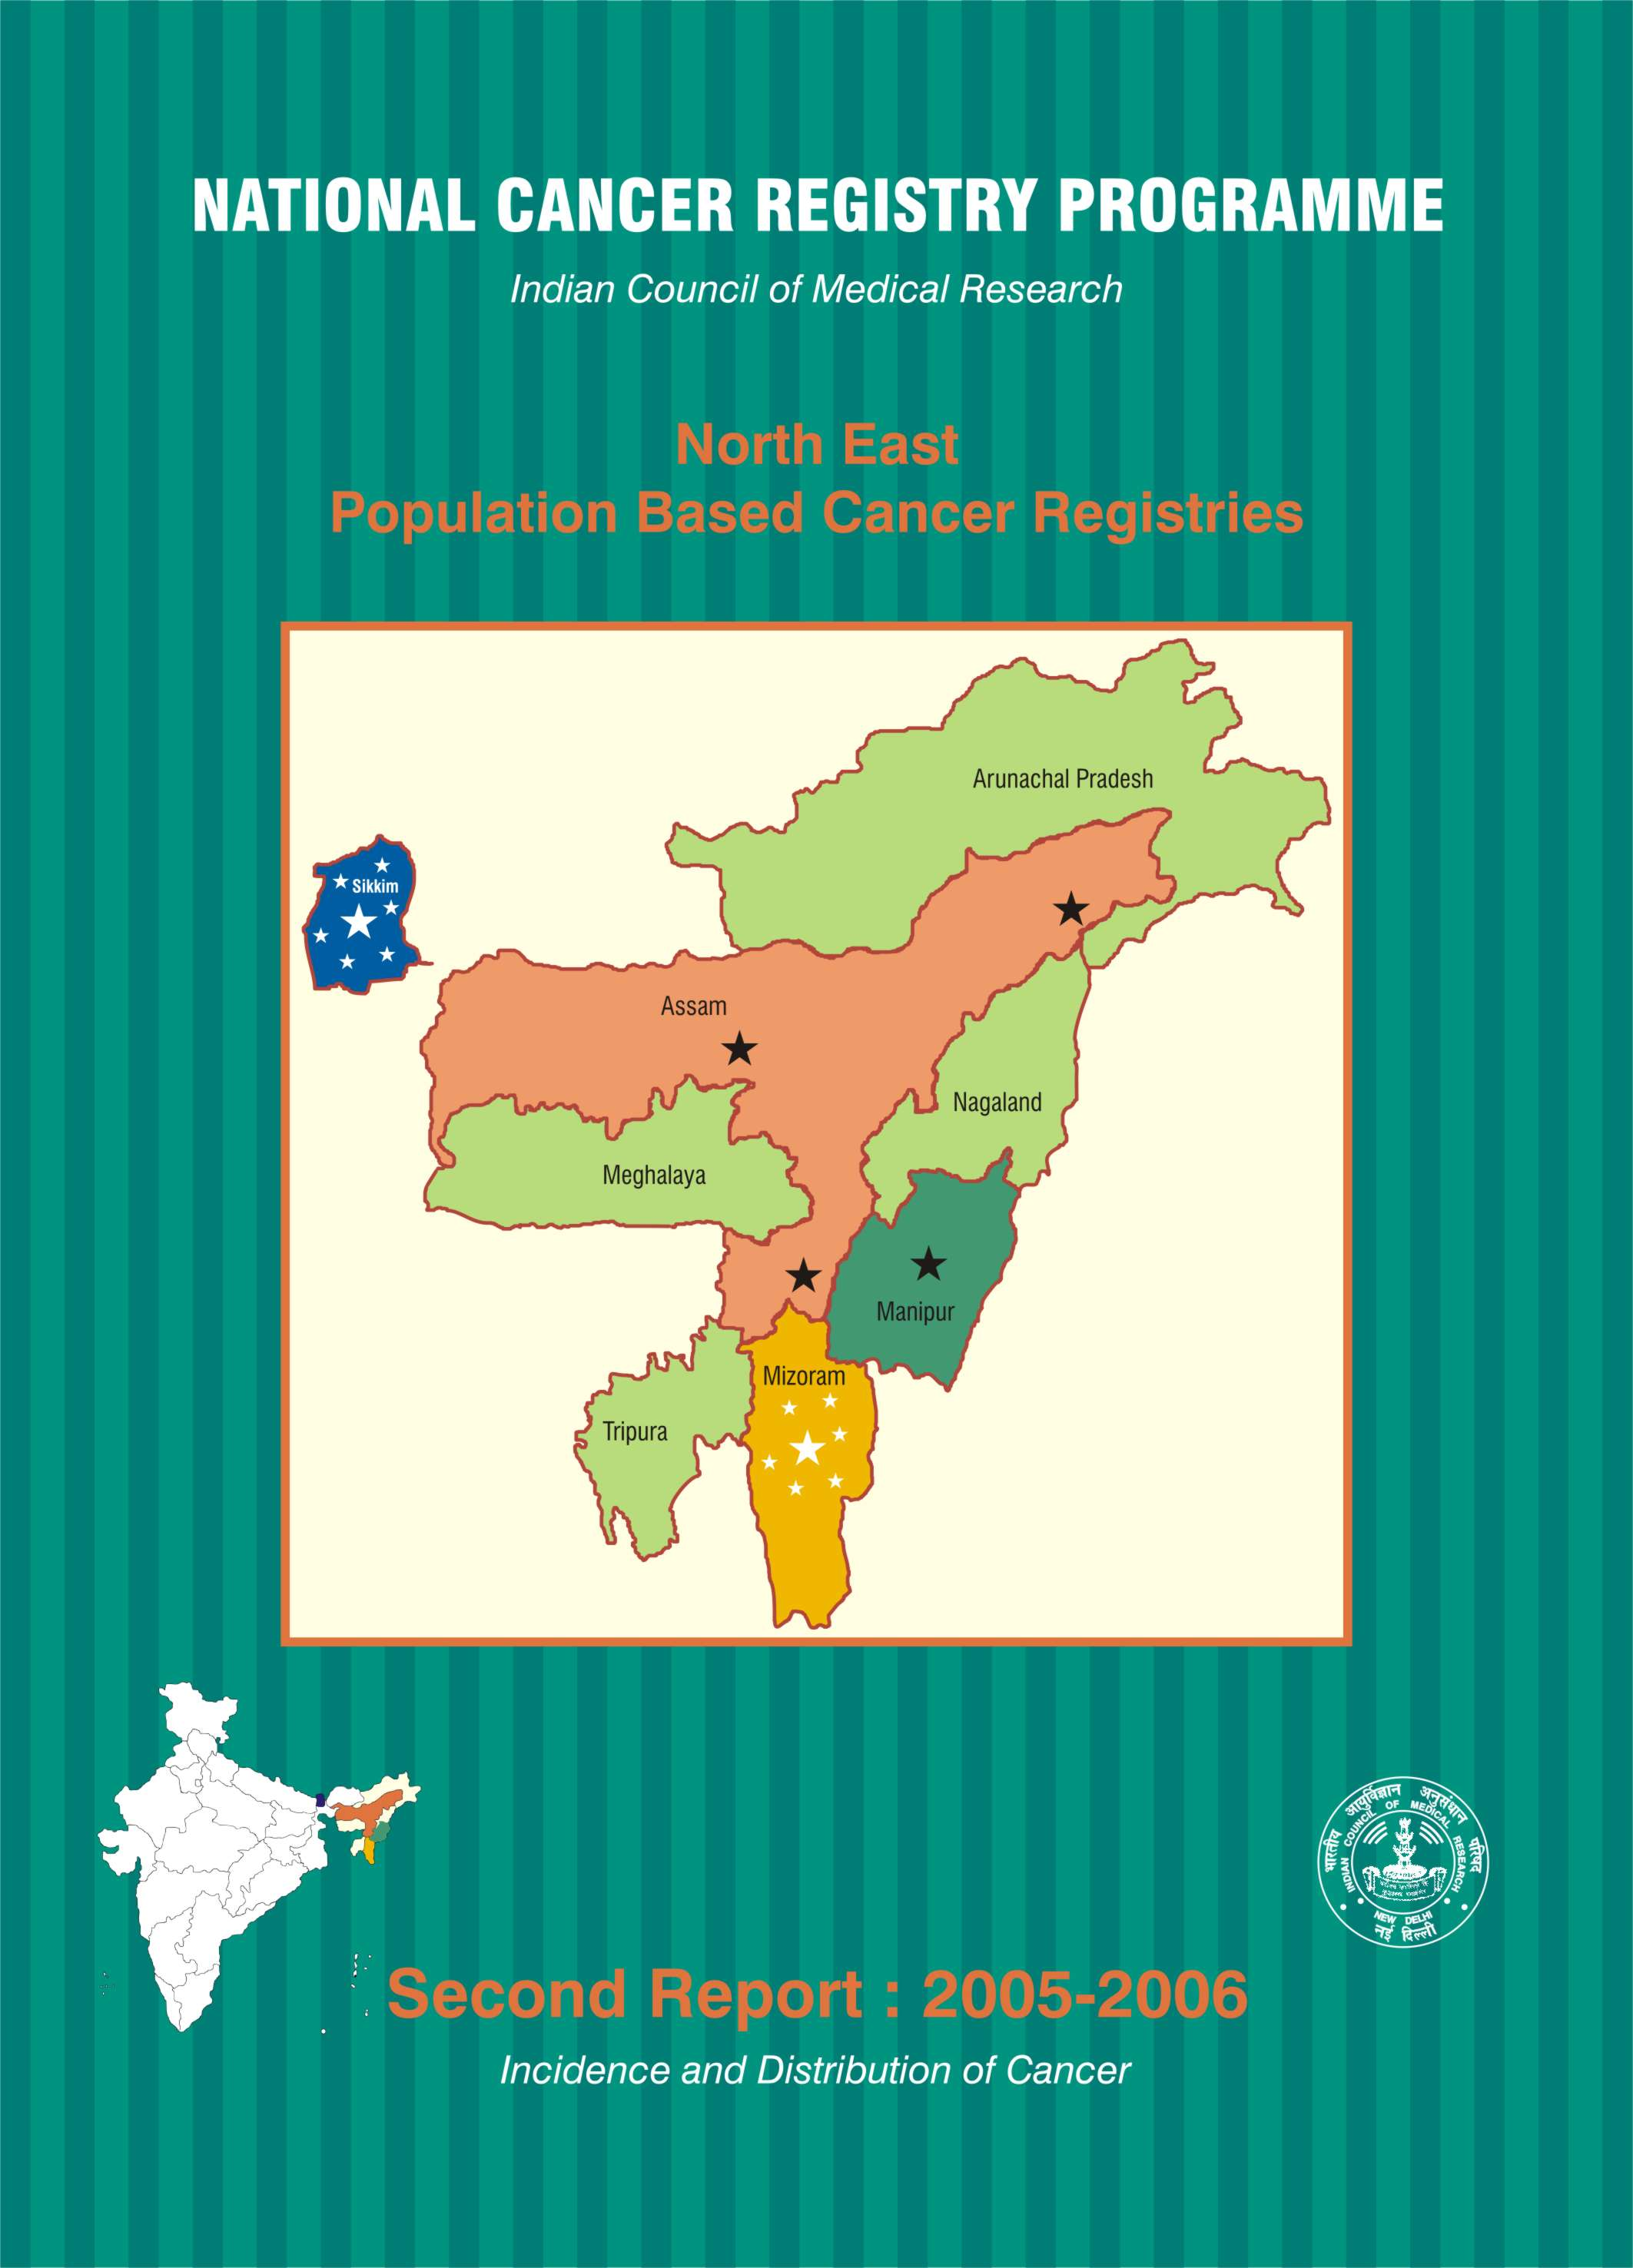 Second Report of the North East Population Based Cancer Registries 2005-2006